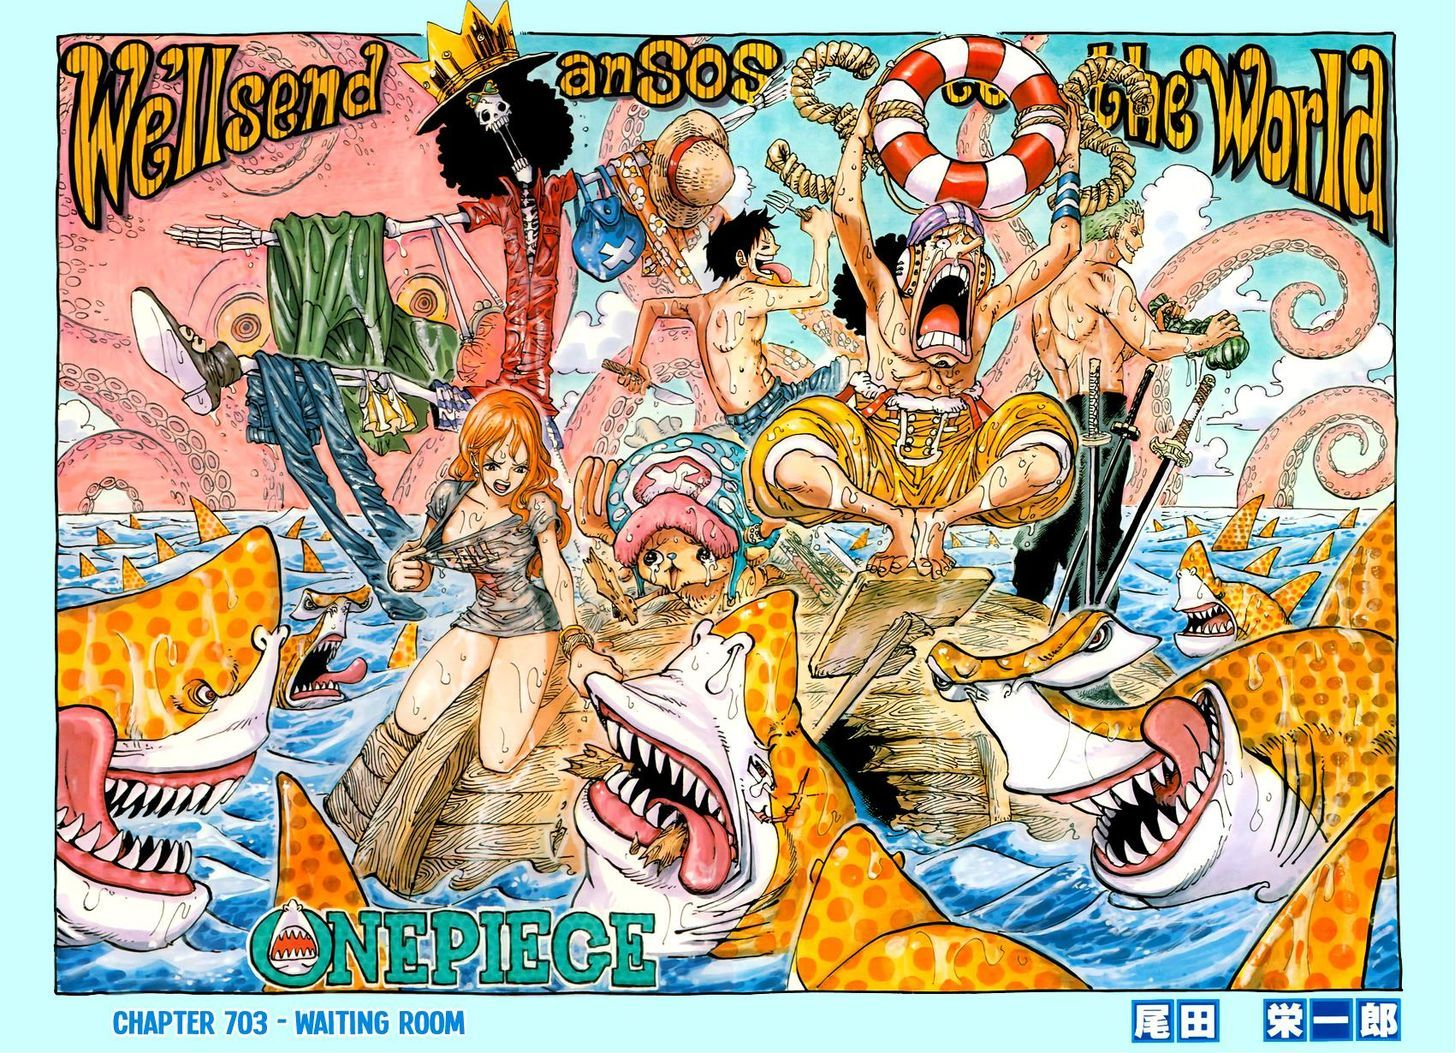 https://im.nineanime.com/comics/pic9/32/96/3052/OnePiece7030258.jpg Page 1